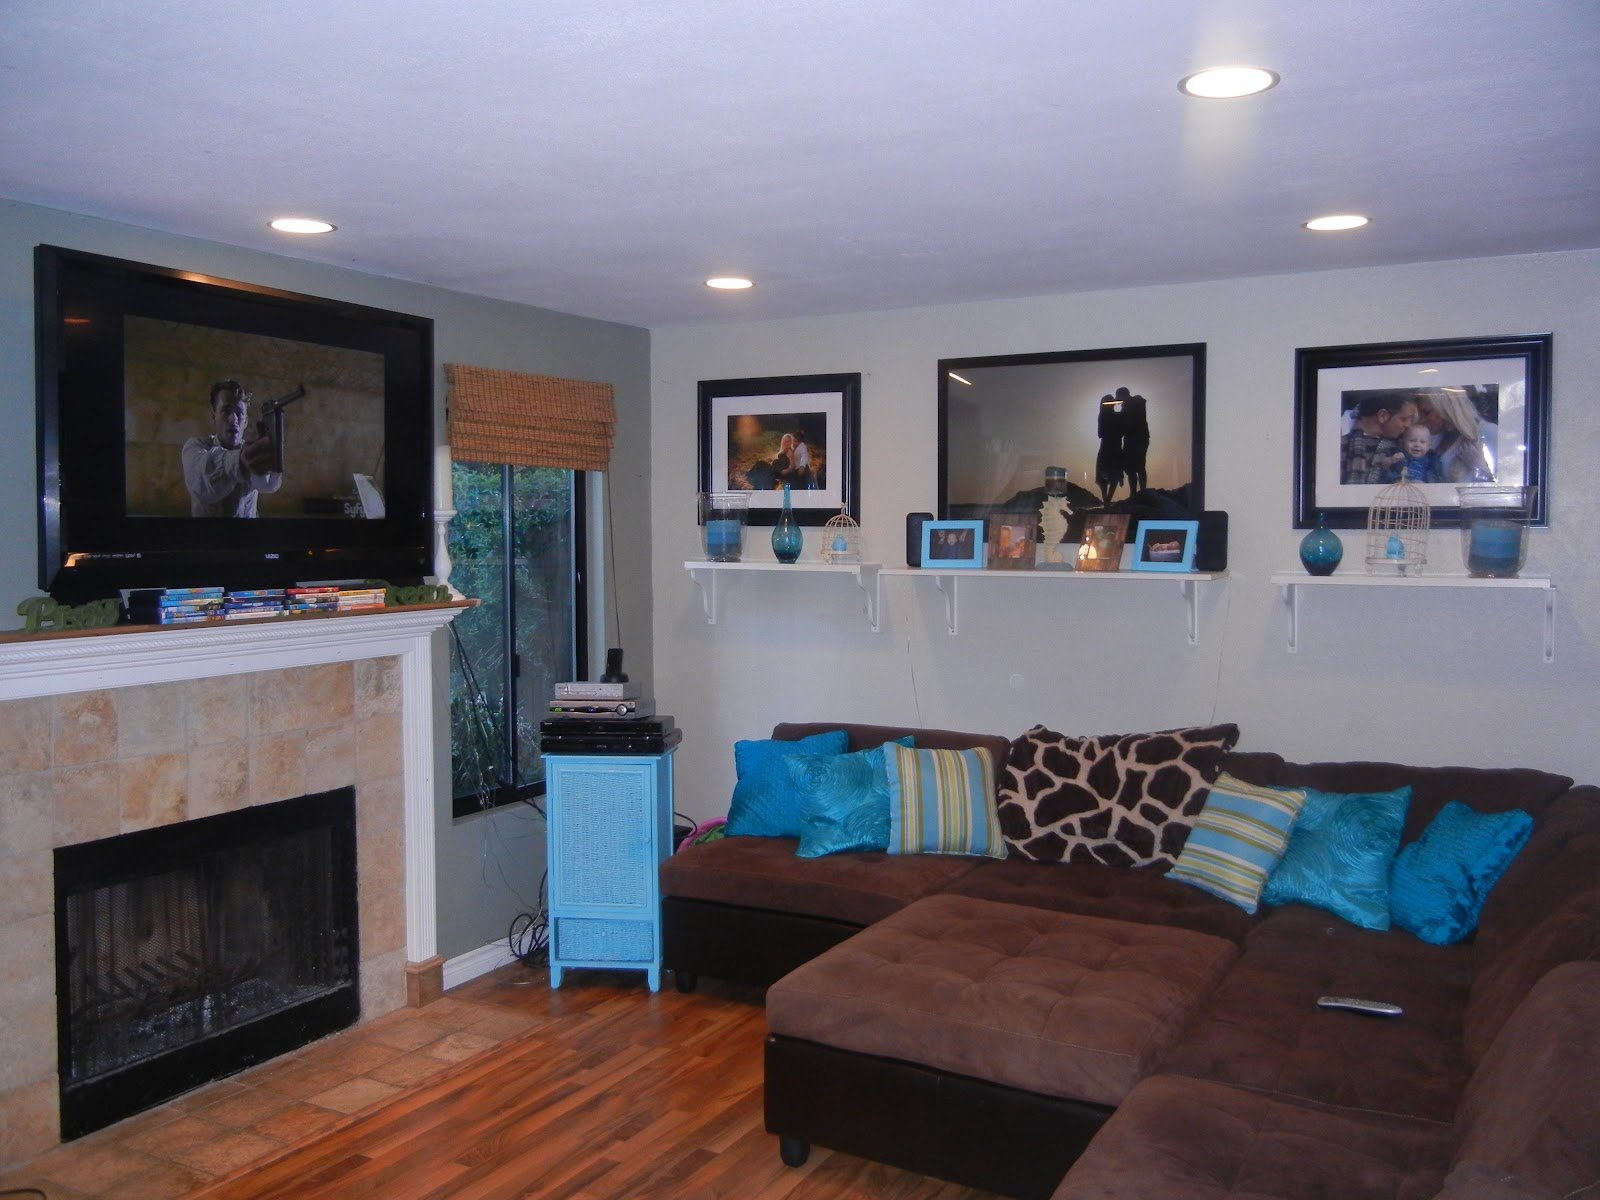 Sleep in the inviting living room in brown and turquoise